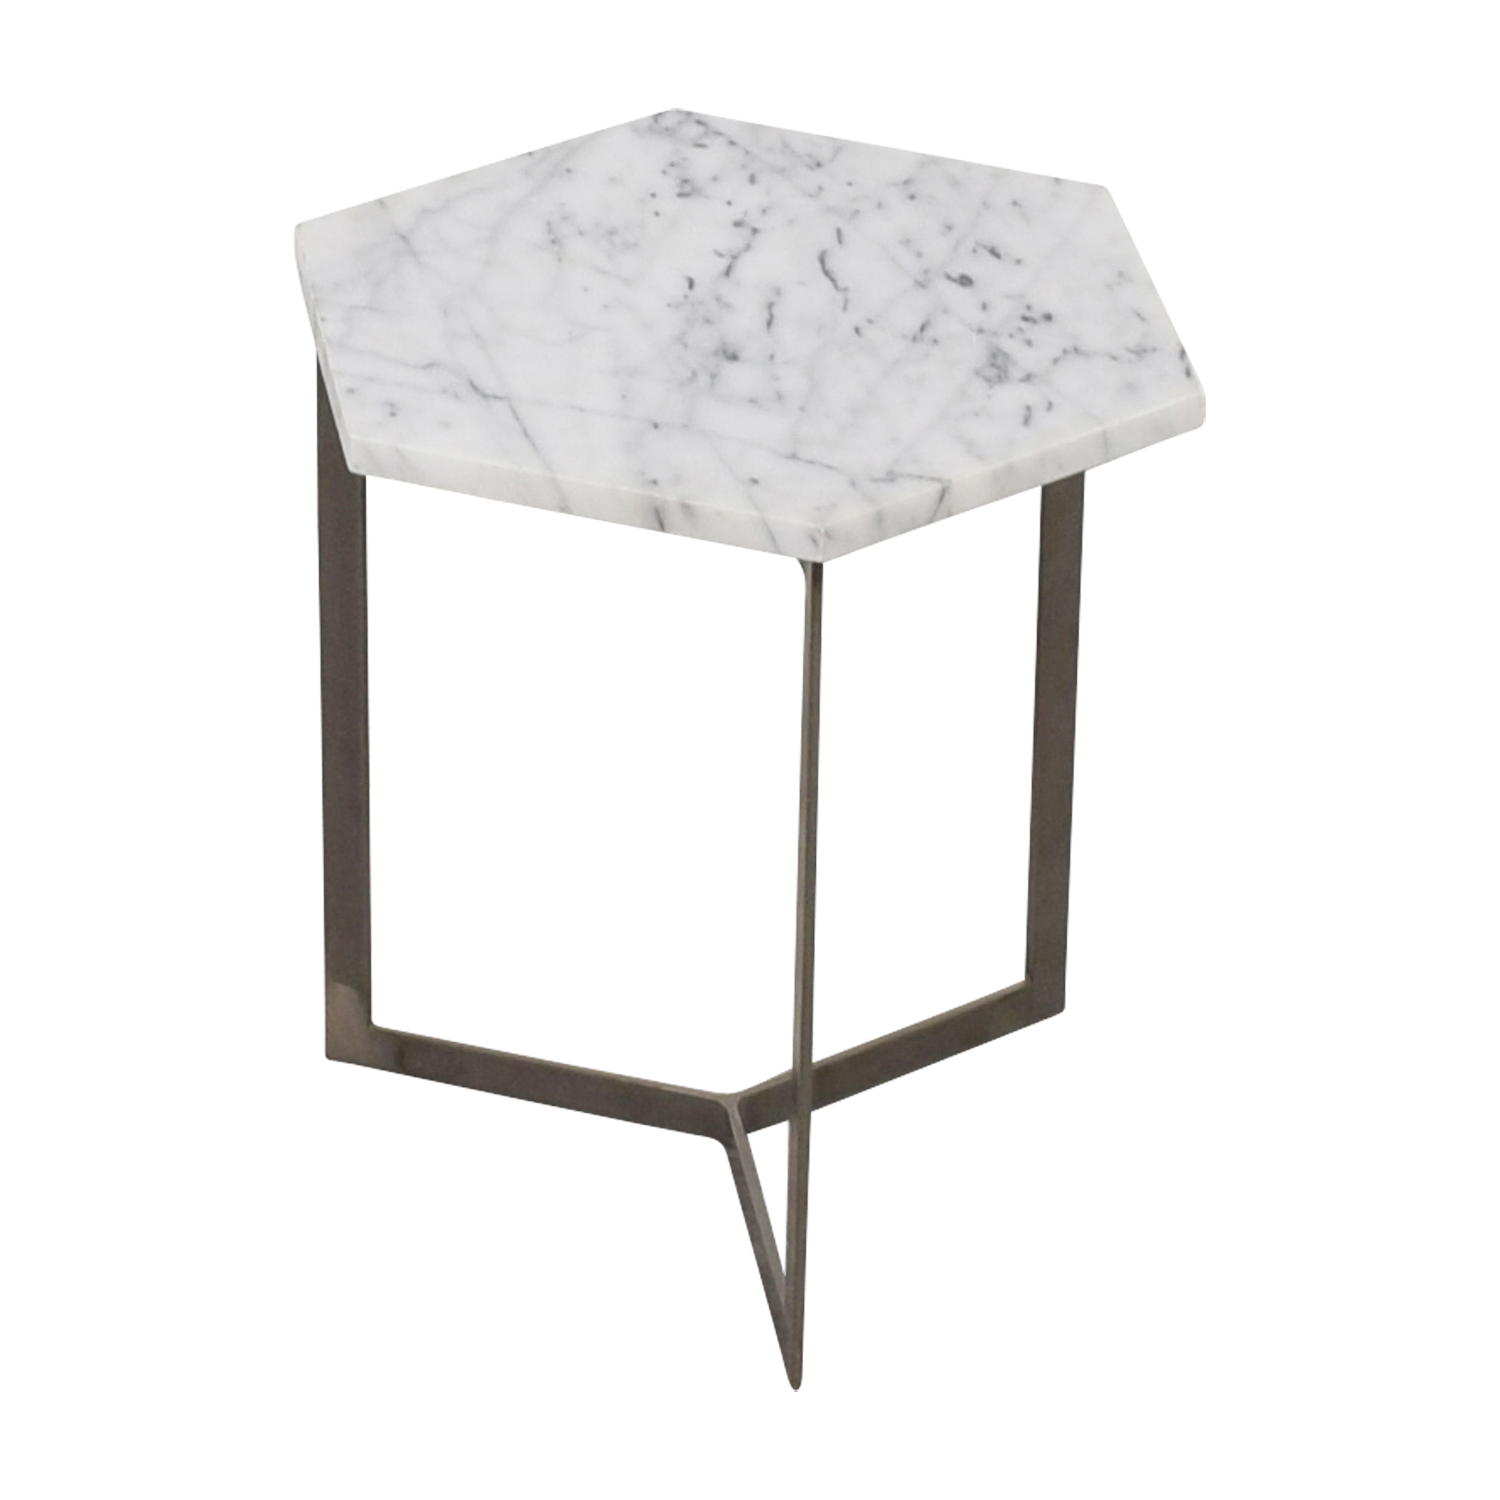 Marble Hexagonal Side Table dimensions